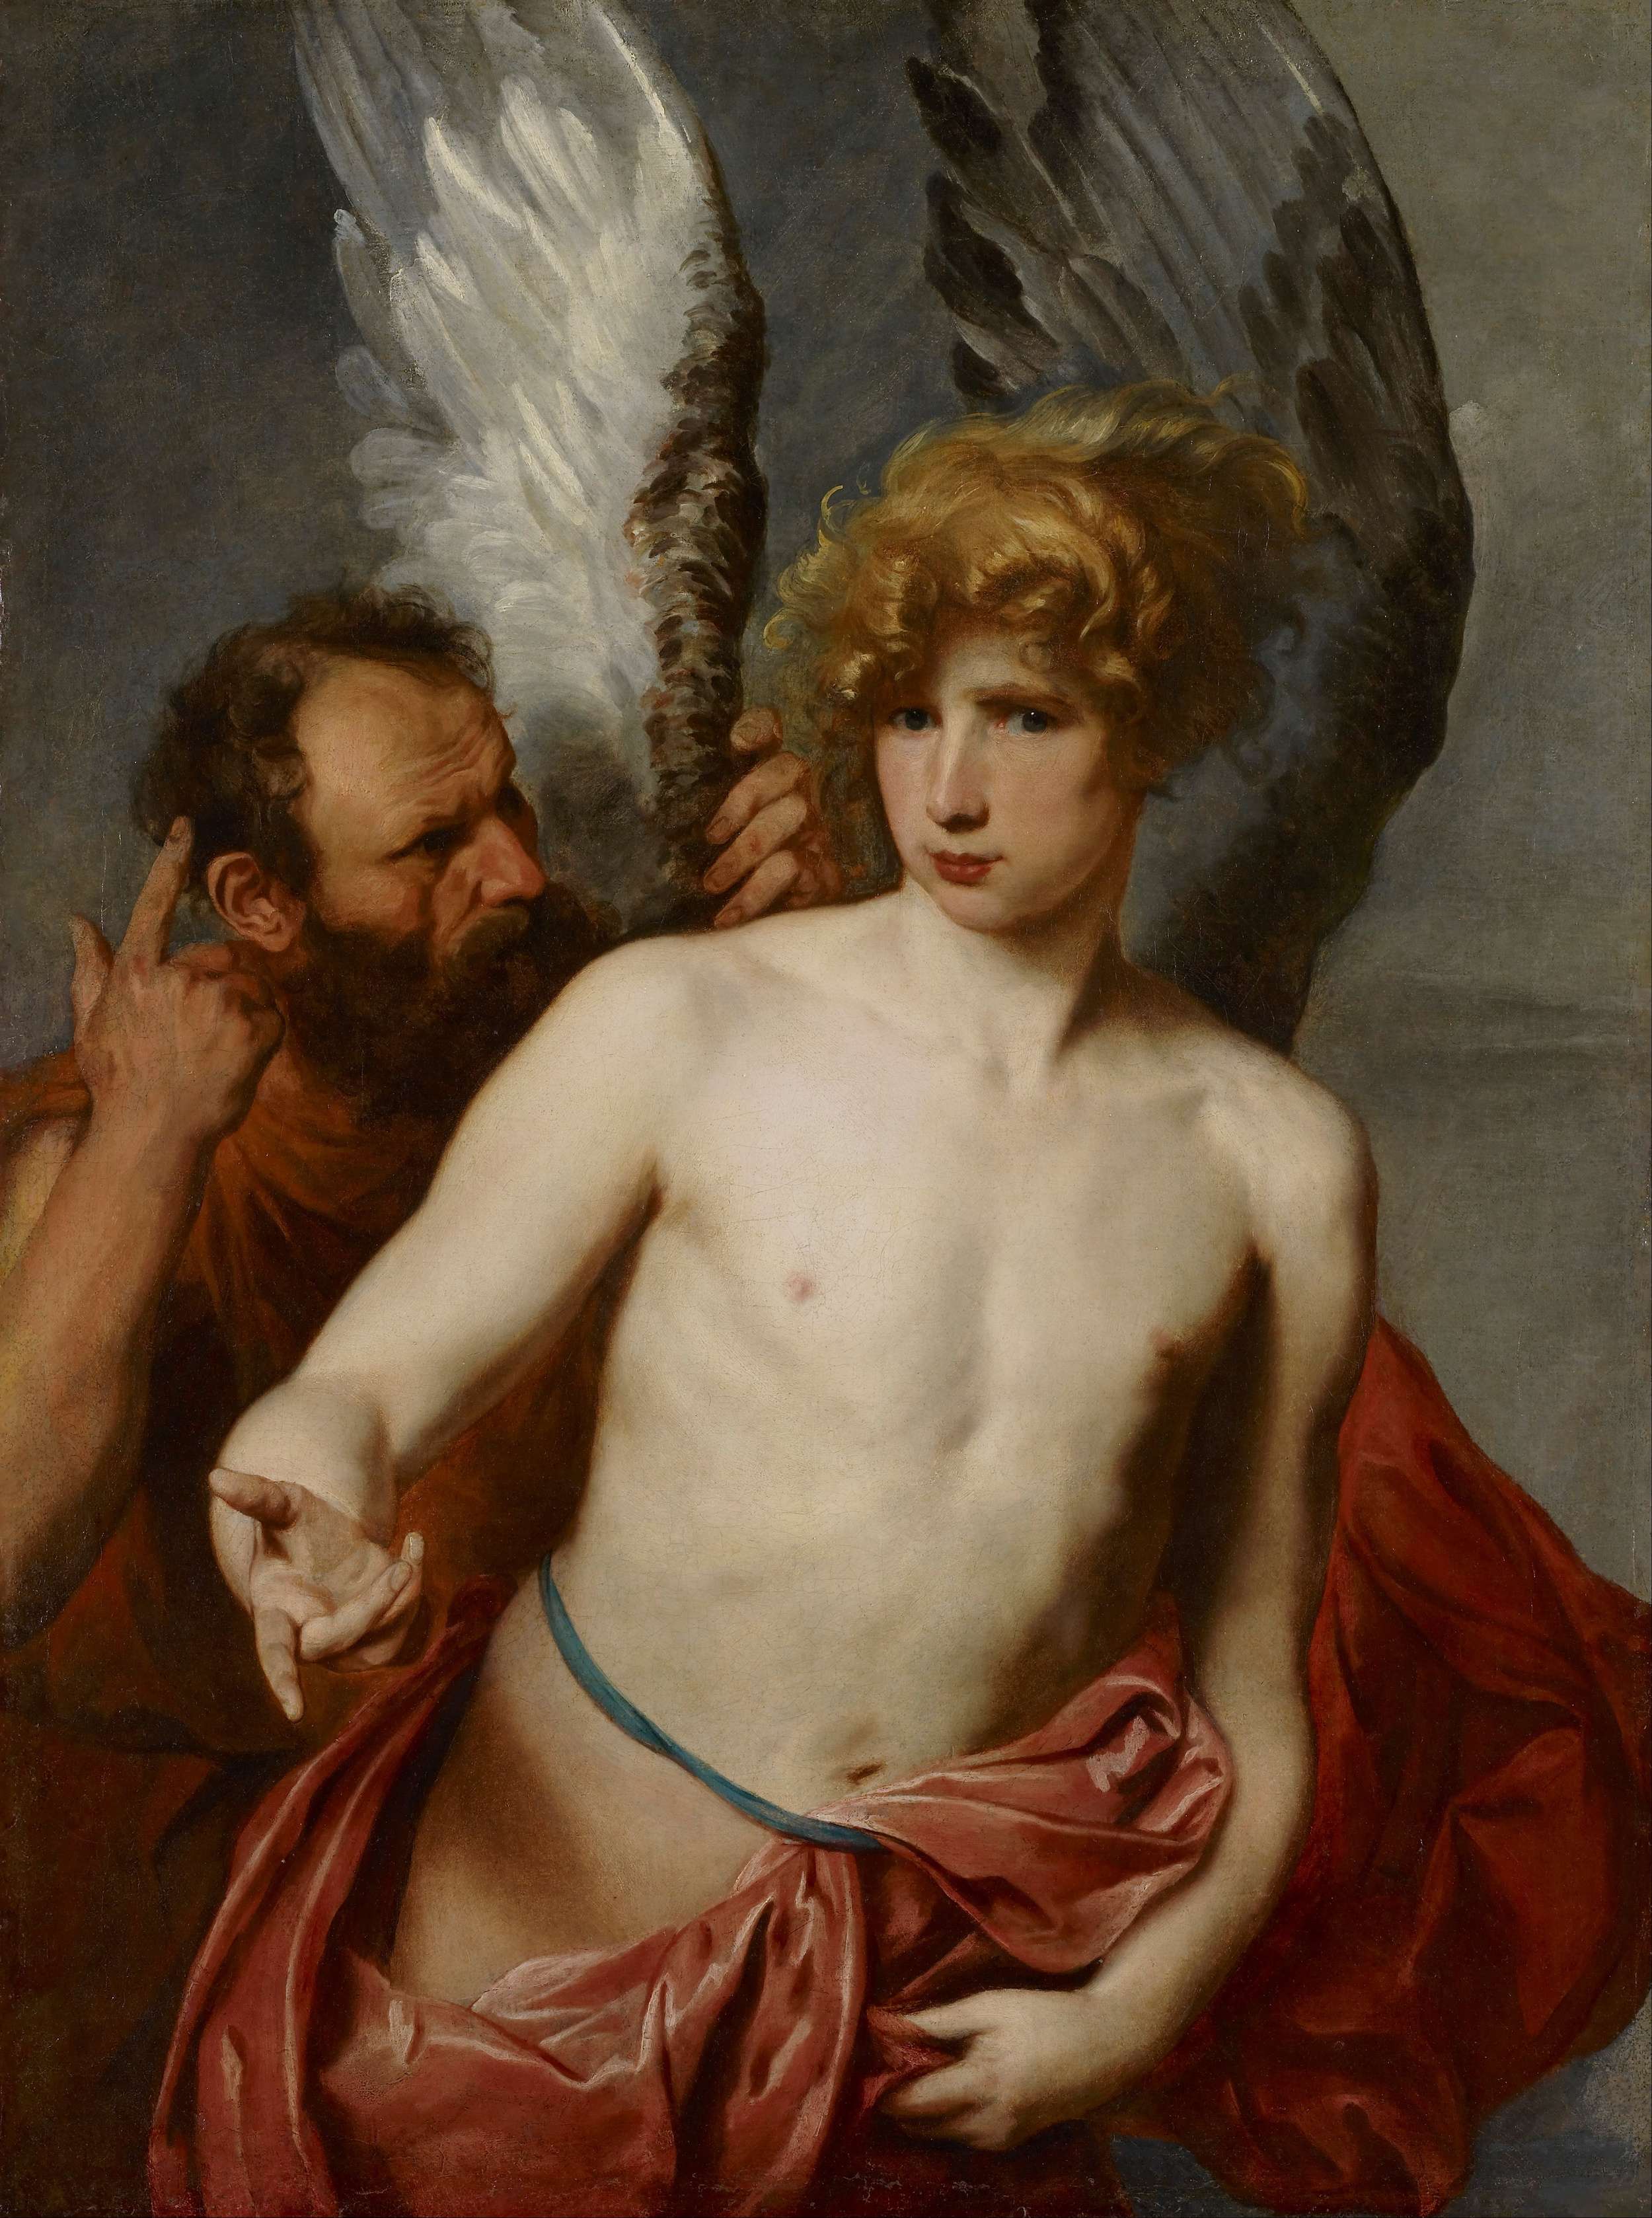 Daedalus and Icarus by Anthony Van Dyck; Wikimedia Commons